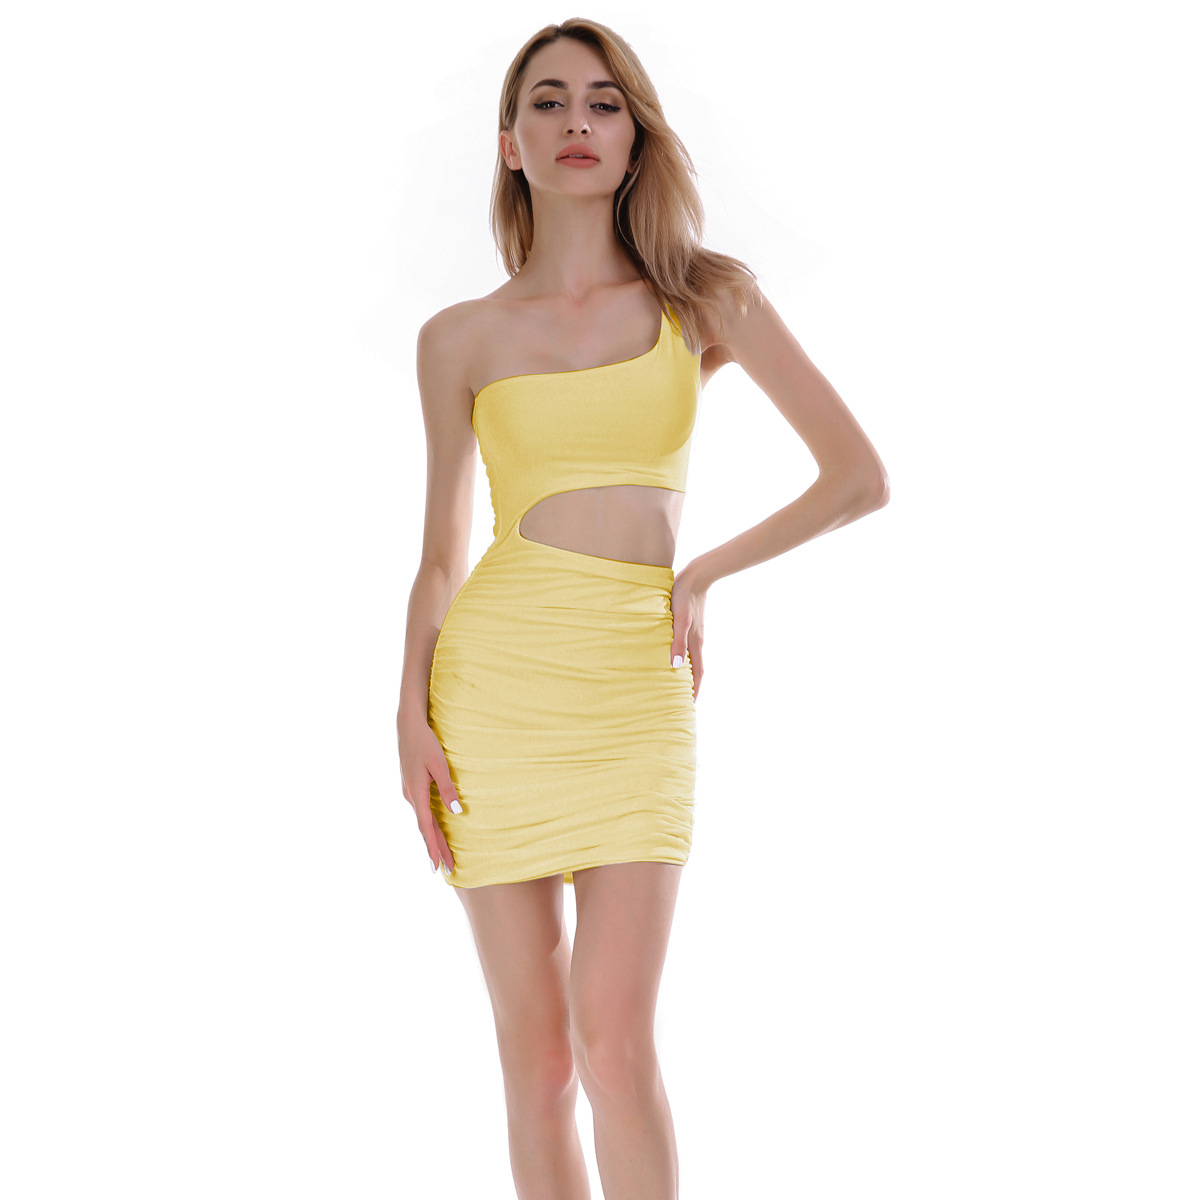 15594819d 2018 dress bodycon summer Amazon new European American one-shoulder dresses  women sexy night club